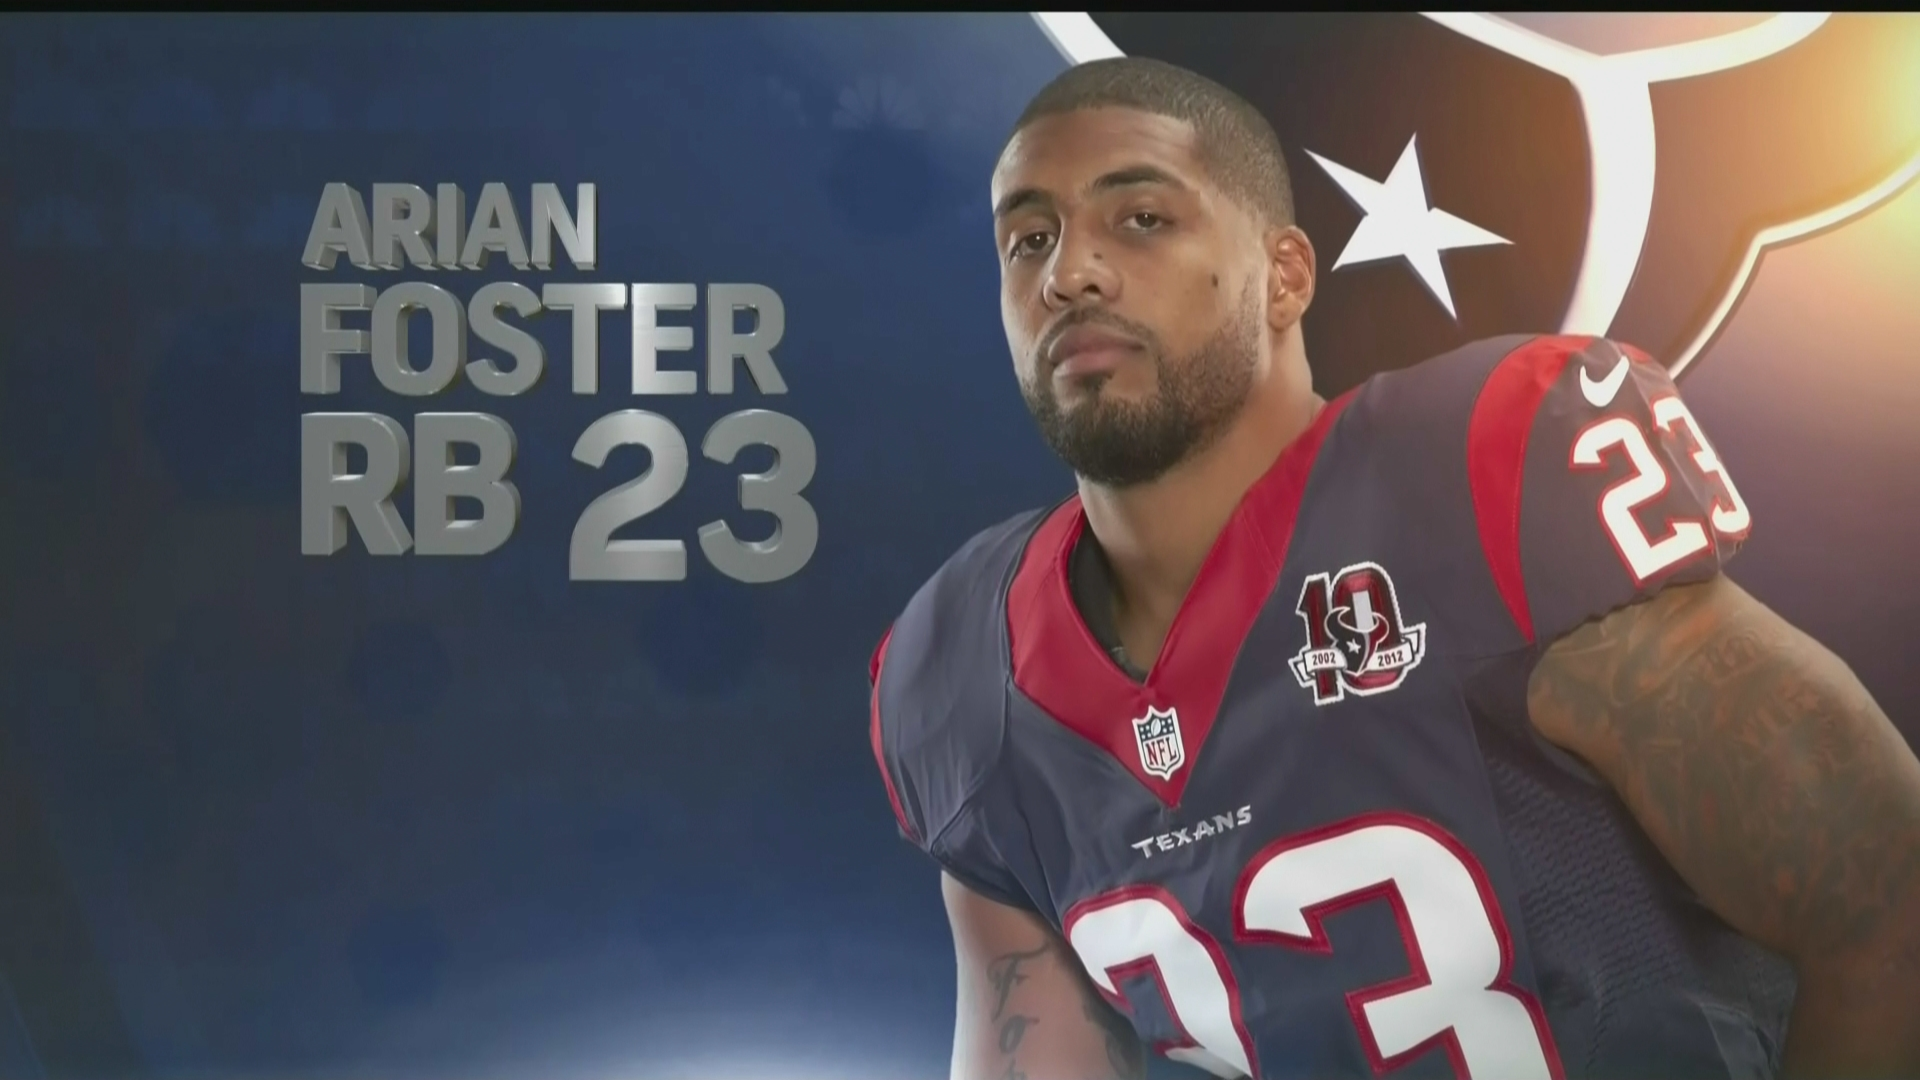 Report: Arian Foster sues pregnant woman